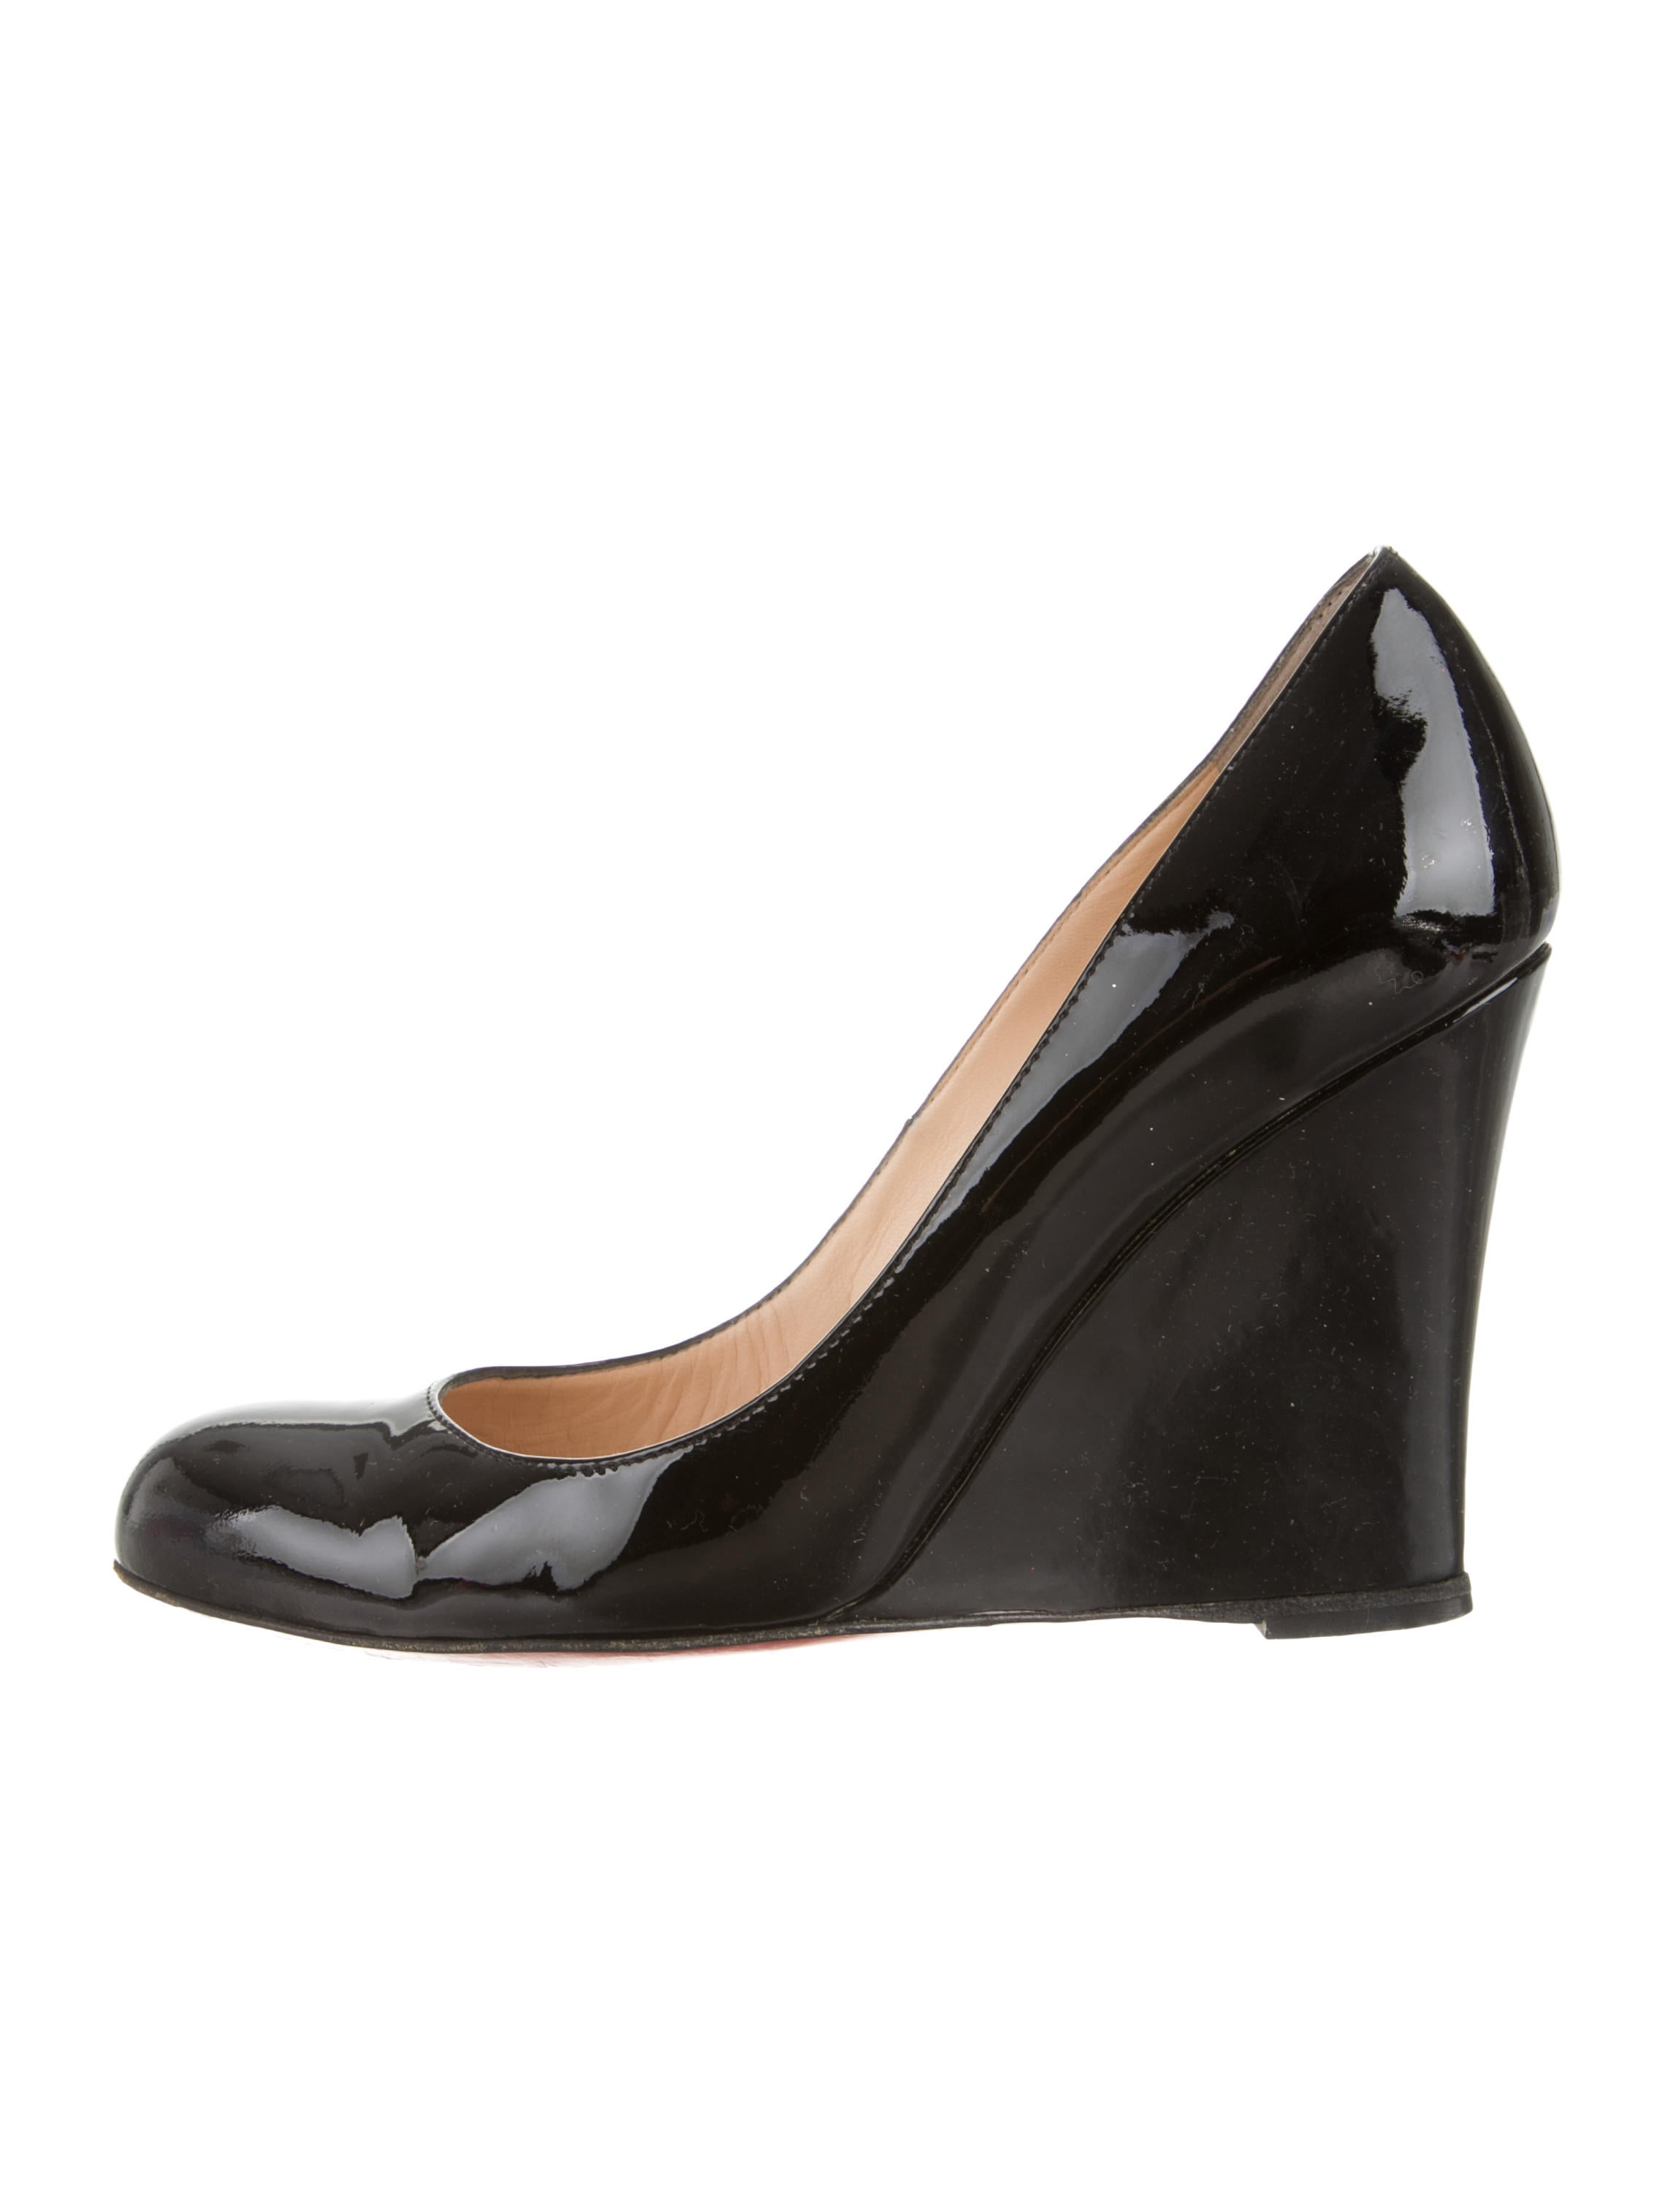 Black Patent Wedge Shoes Size